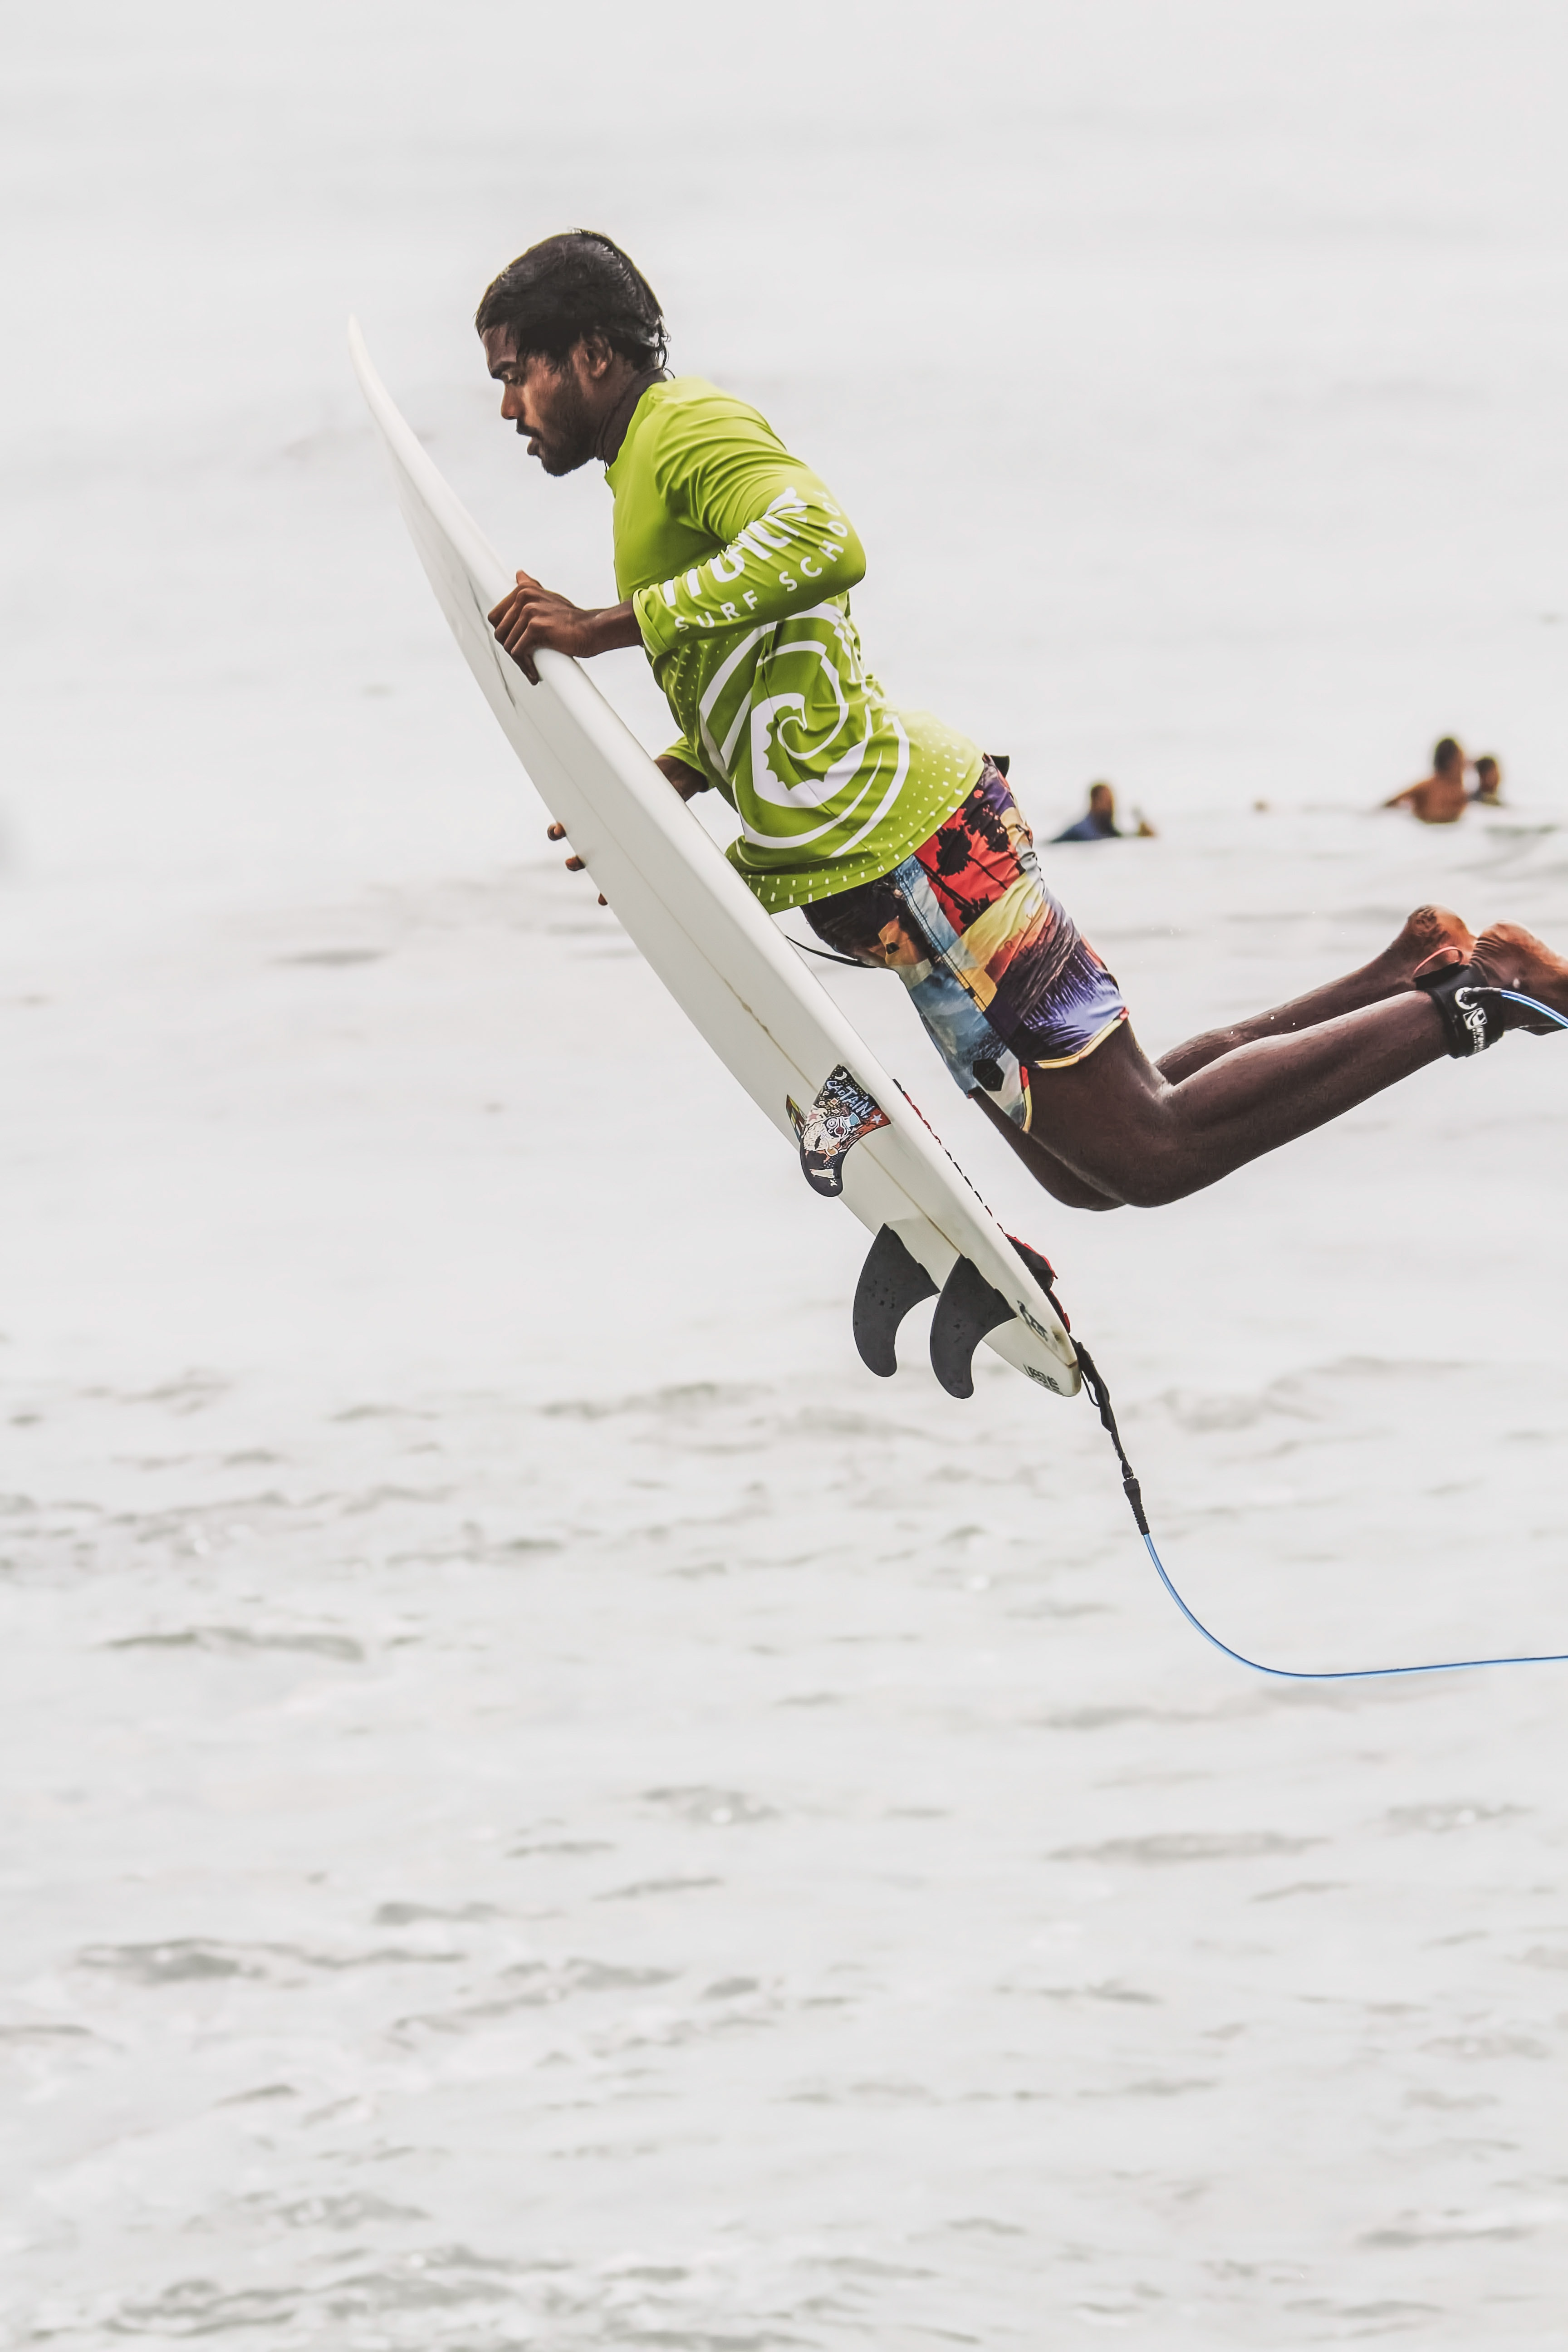 Surfer with a surfboard in mid-air after a jump at North Beach